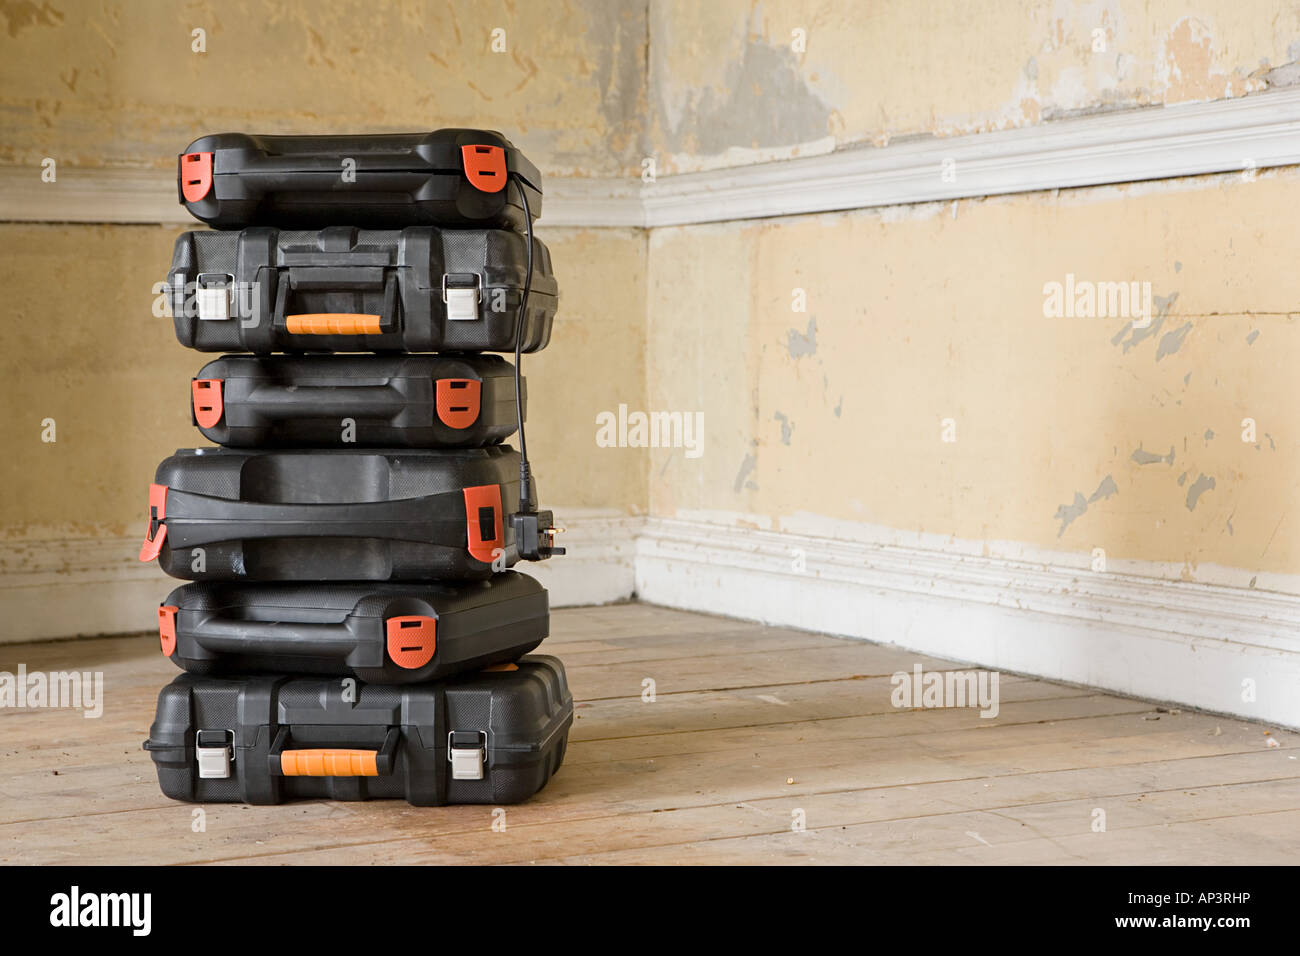 Stack of tool boxes - Stock Image